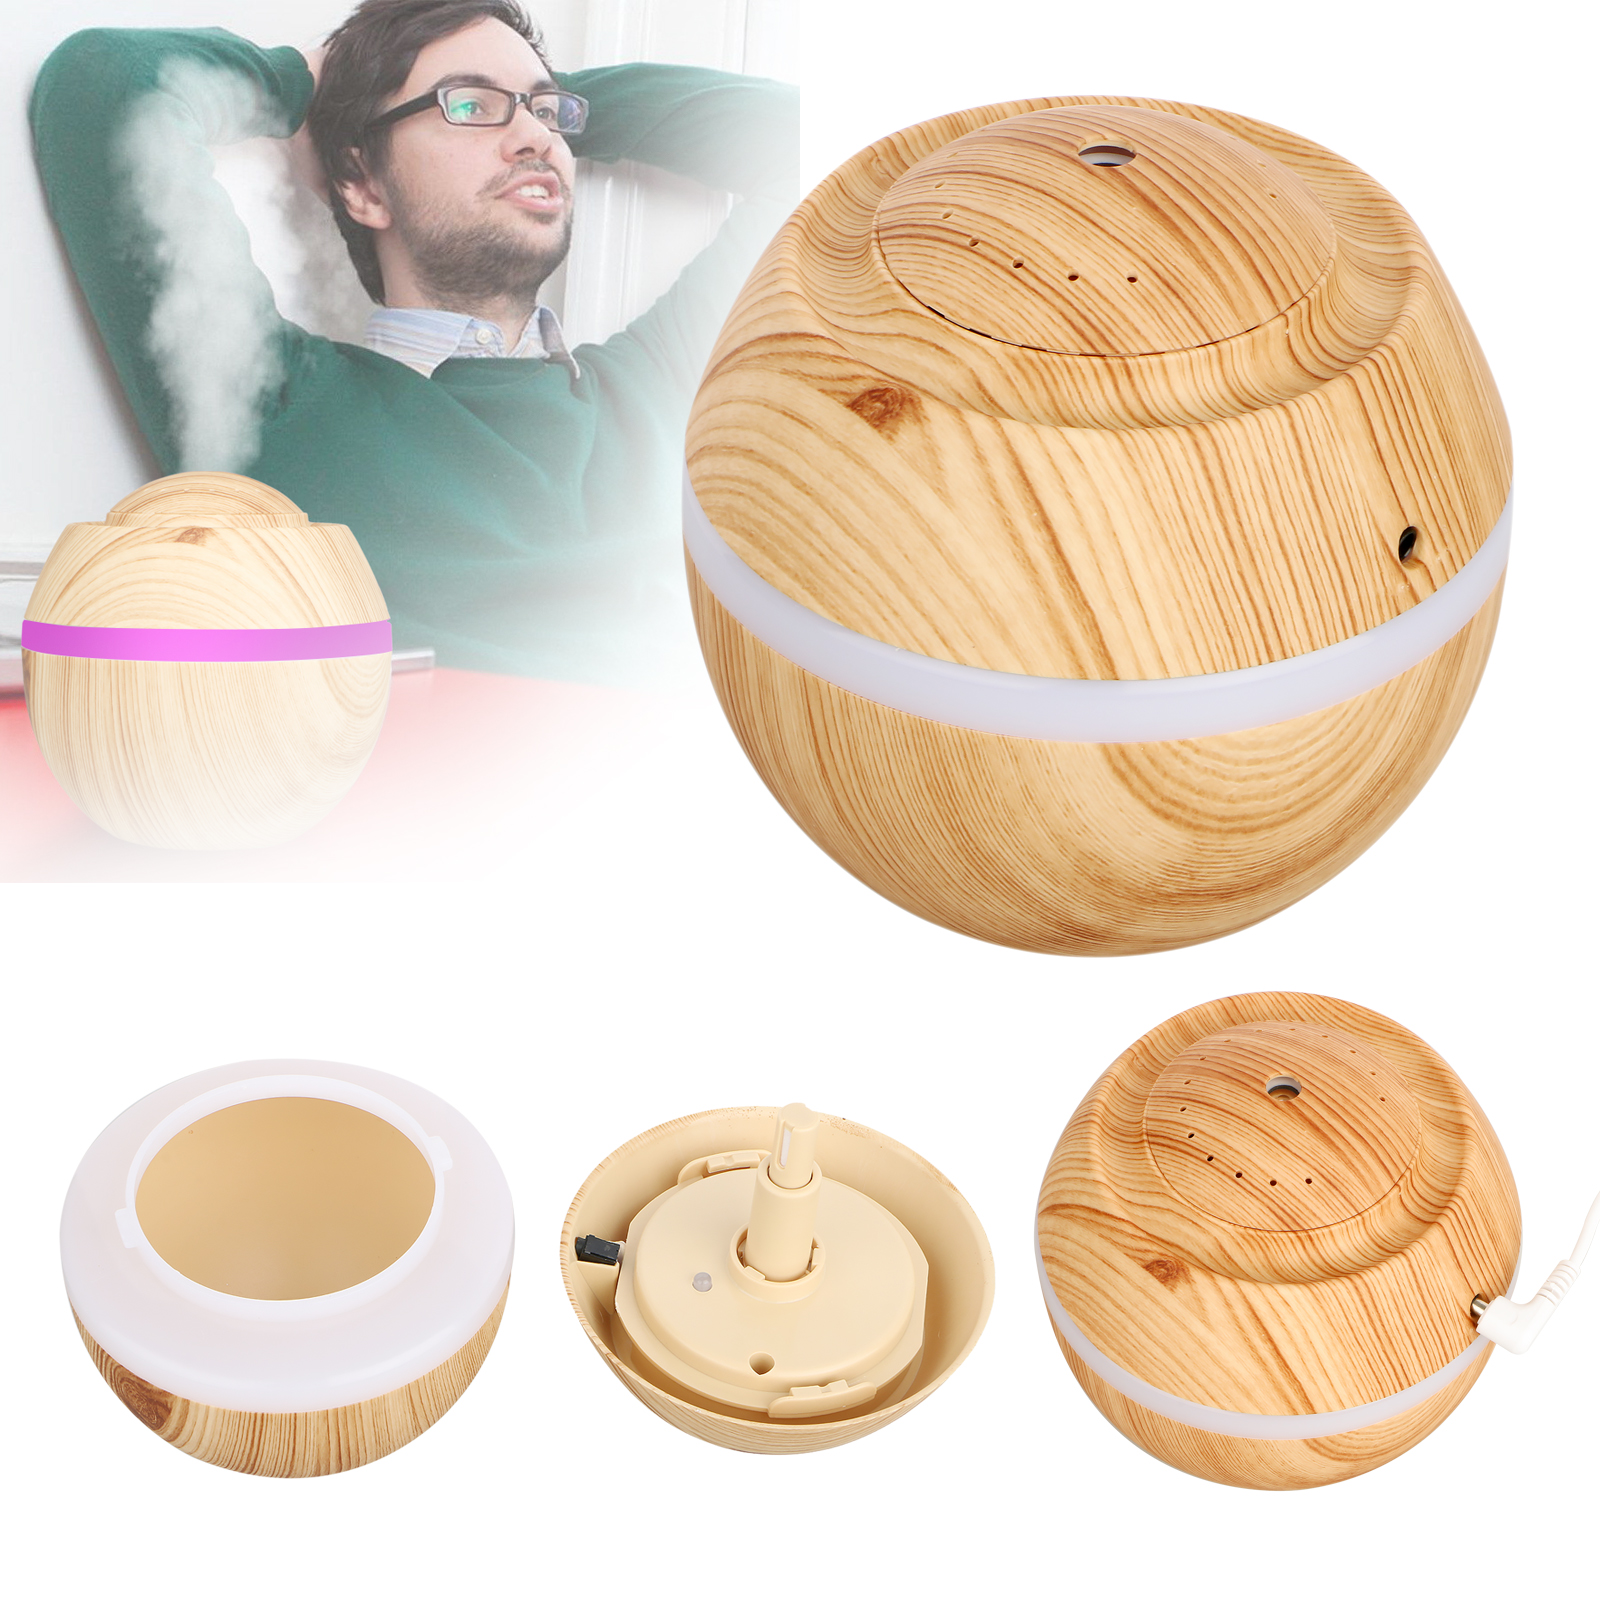 500ml Cool Mist Humidifier, EEEKit Wood Grain Ultrasonic Aromatherapy Diffuser Air Humidifier with 7 Color LED Mode Light for Office, Home Living Room, Yoga